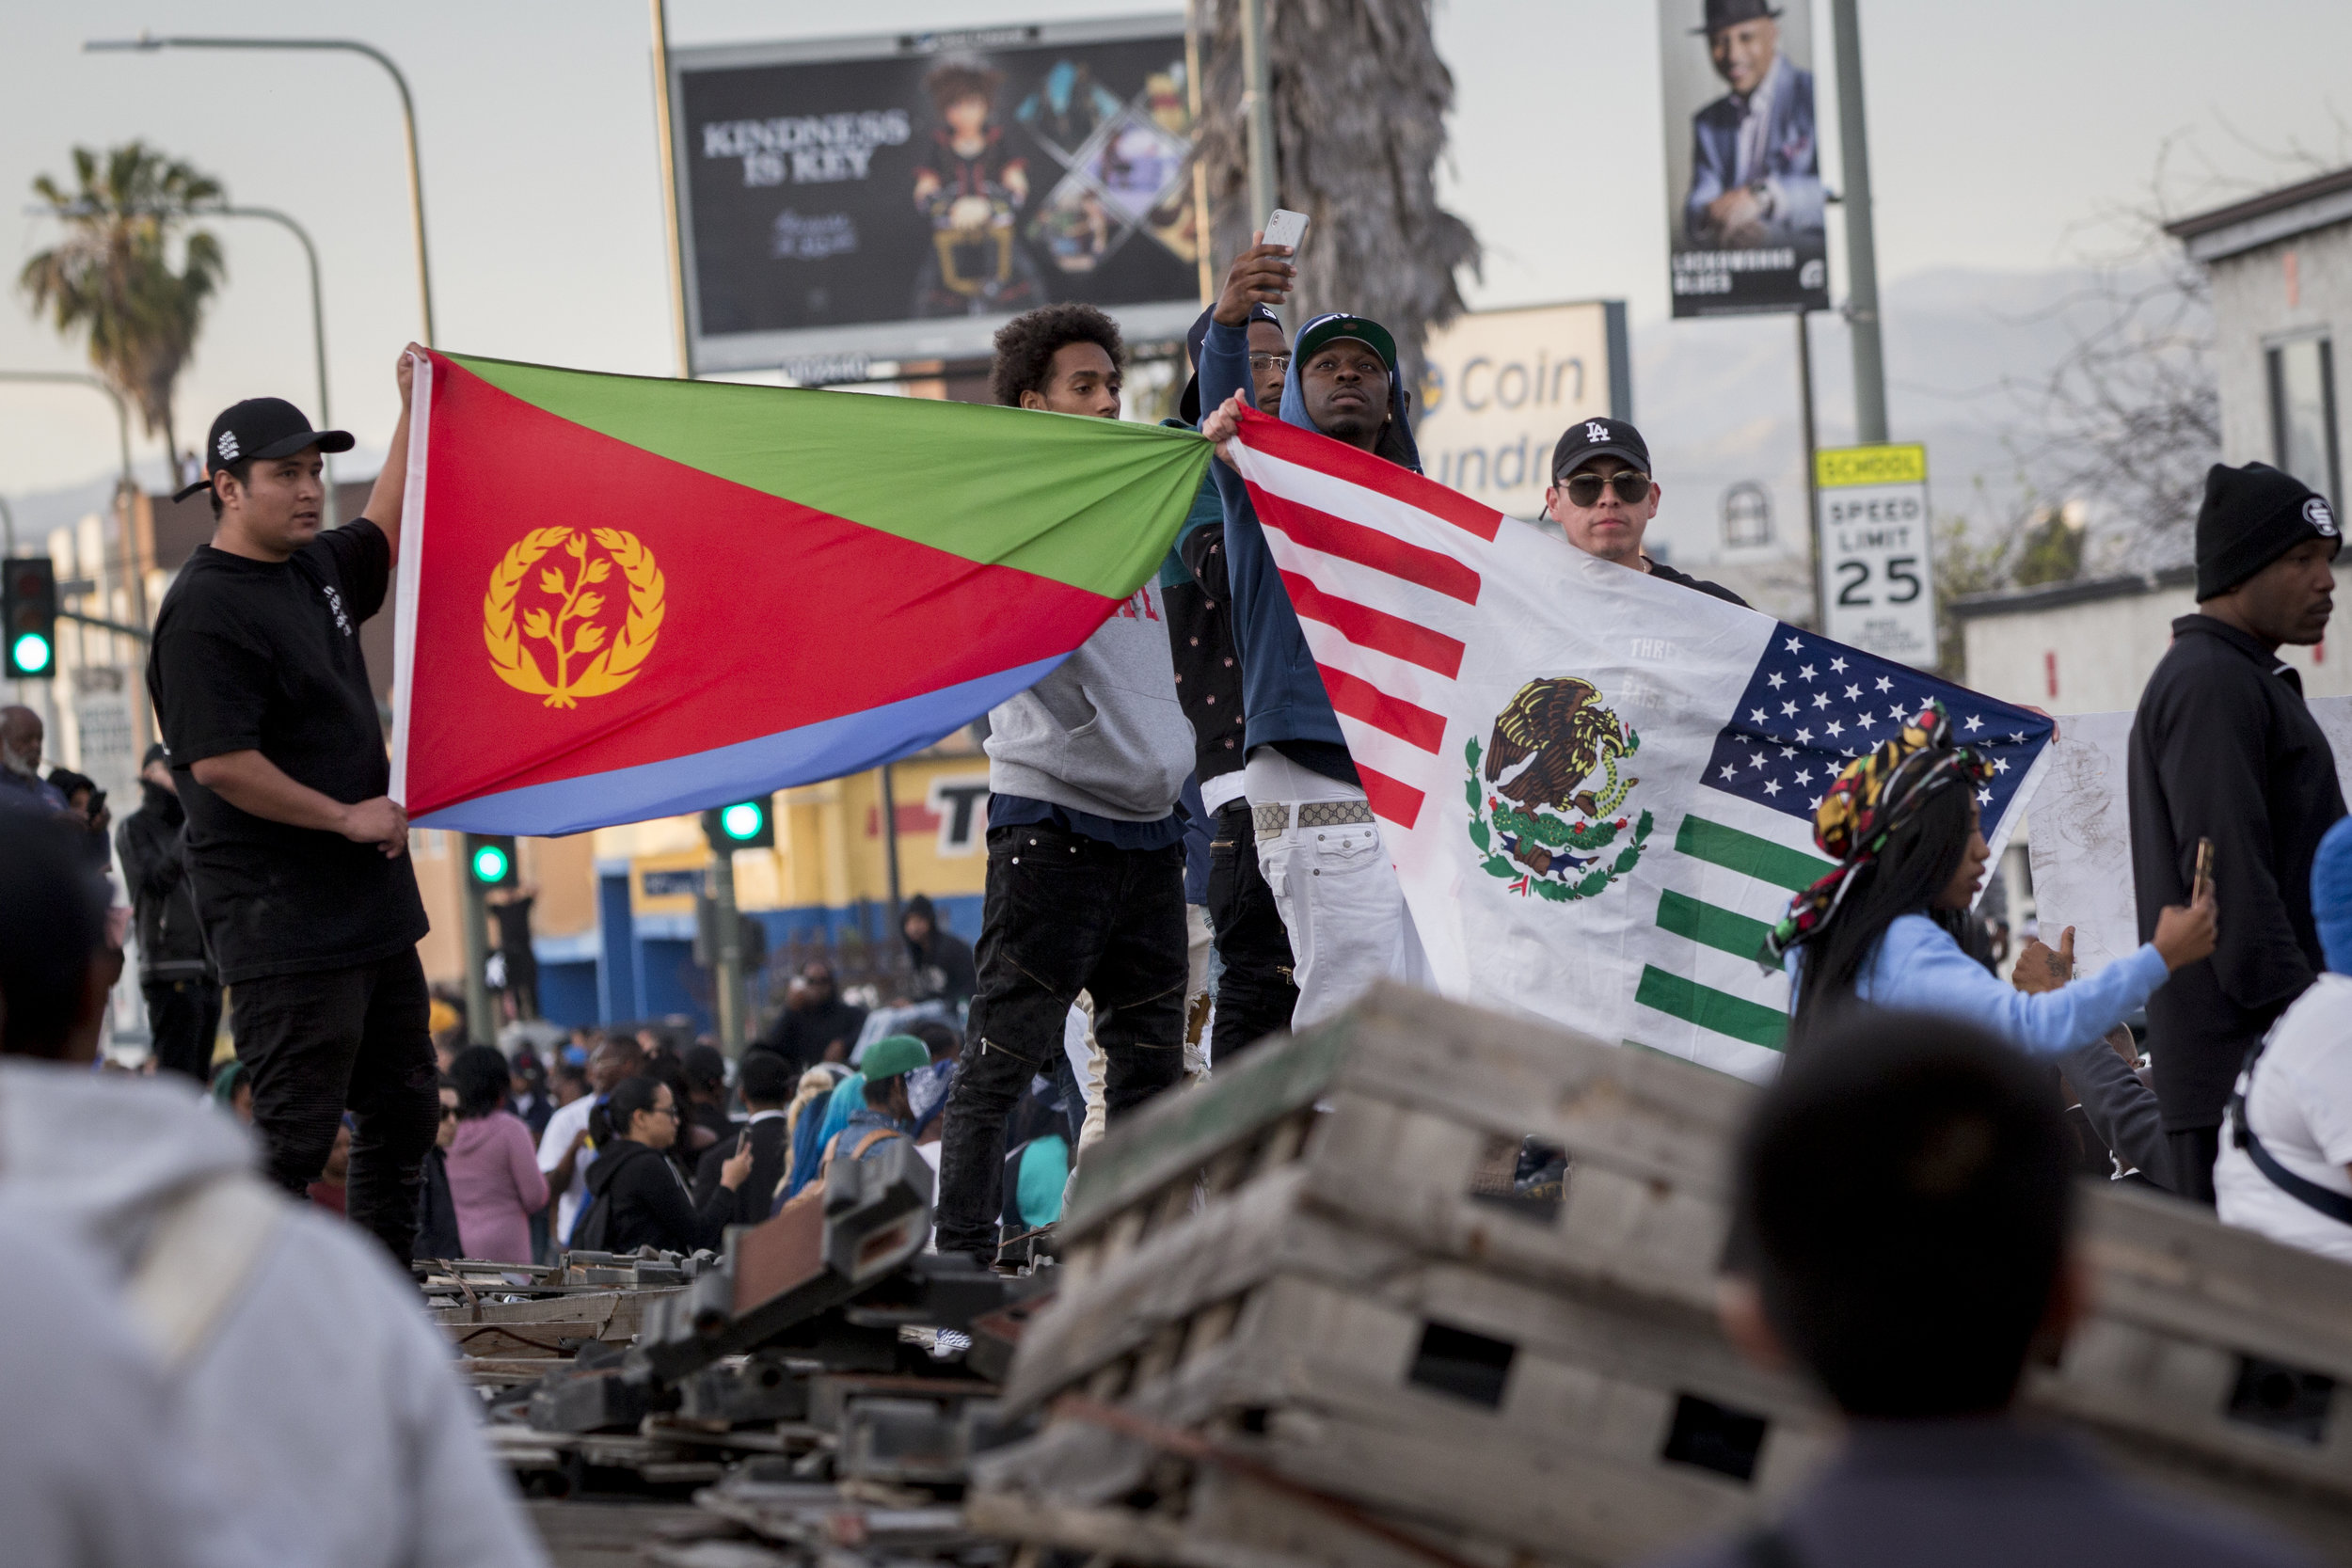 """Fans, holding up unified Eritrean and Mexican flags, turn out to say goodbye to Nipsey Hussle as the Celebration of Life procession rides down Crenshaw Blvd. in Los Angeles, California on April 11, 2019.  The hearse carrying the casket of the slain rapper, Nipsey Hussle, will journey a 25.5 mile """"Victory Lap"""" through South Central to allow his fans, who could not attend the ceremony, to say goodbye.  (Jose Lopez)"""